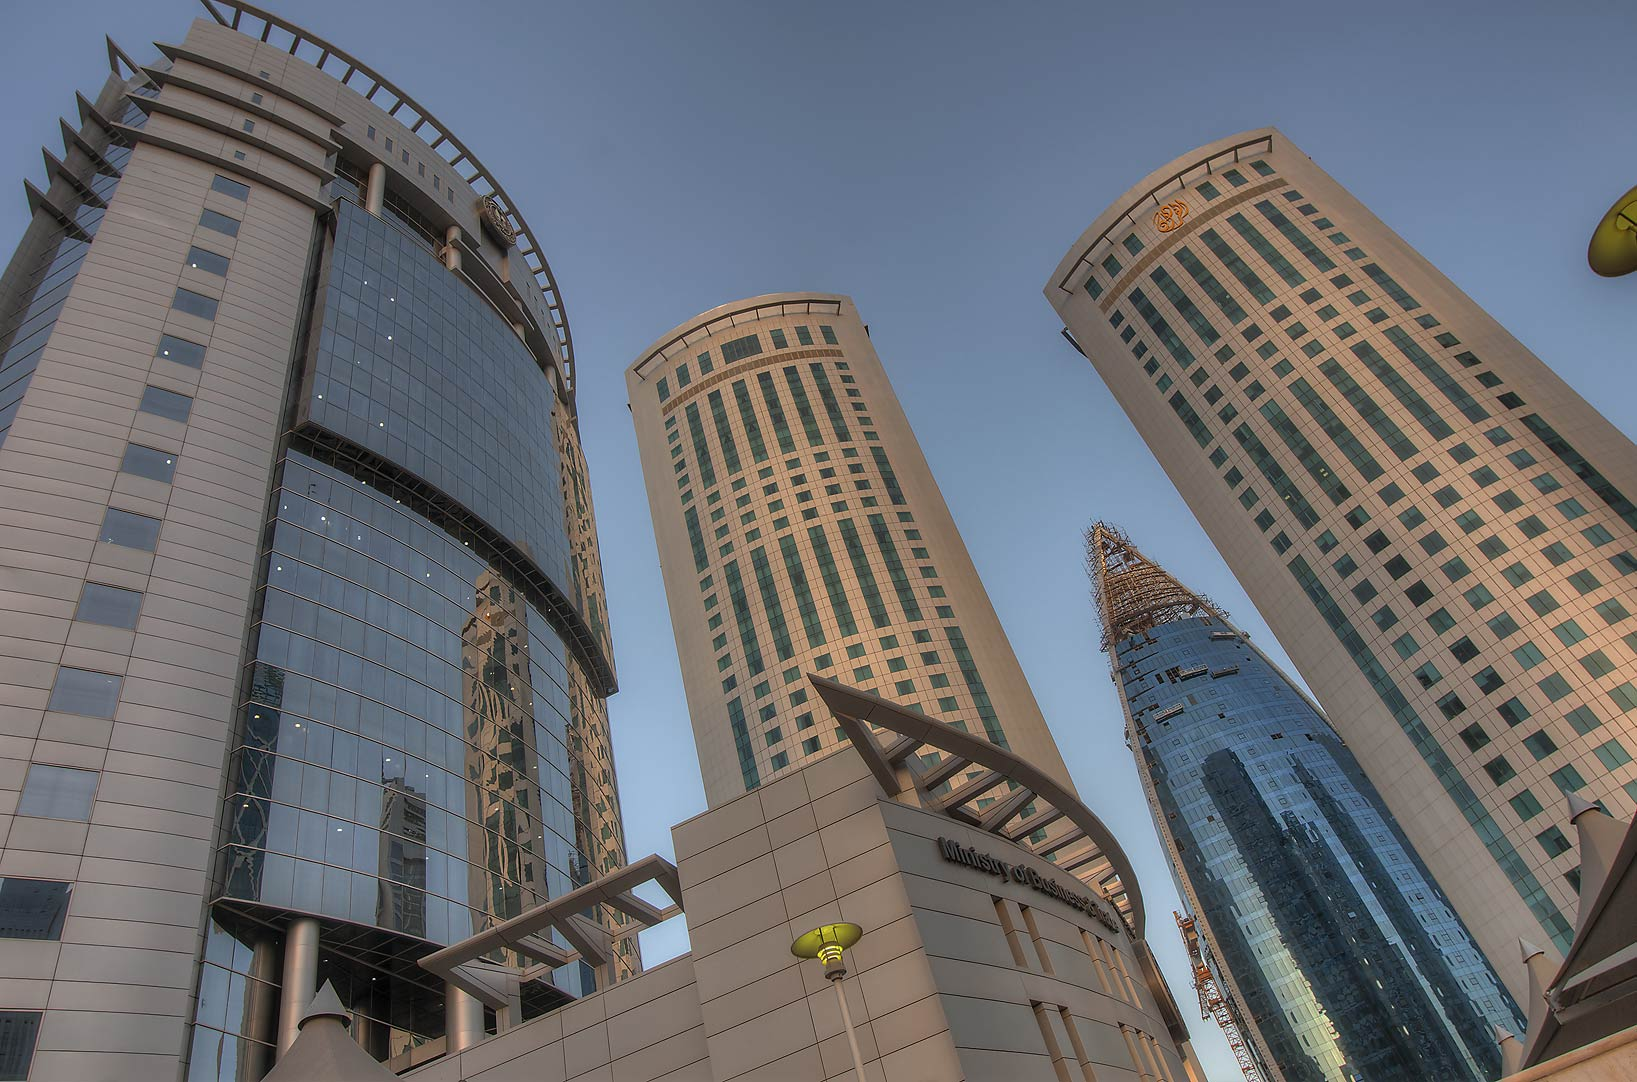 Ministry of Business and Trade in West Bay. Doha, Qatar